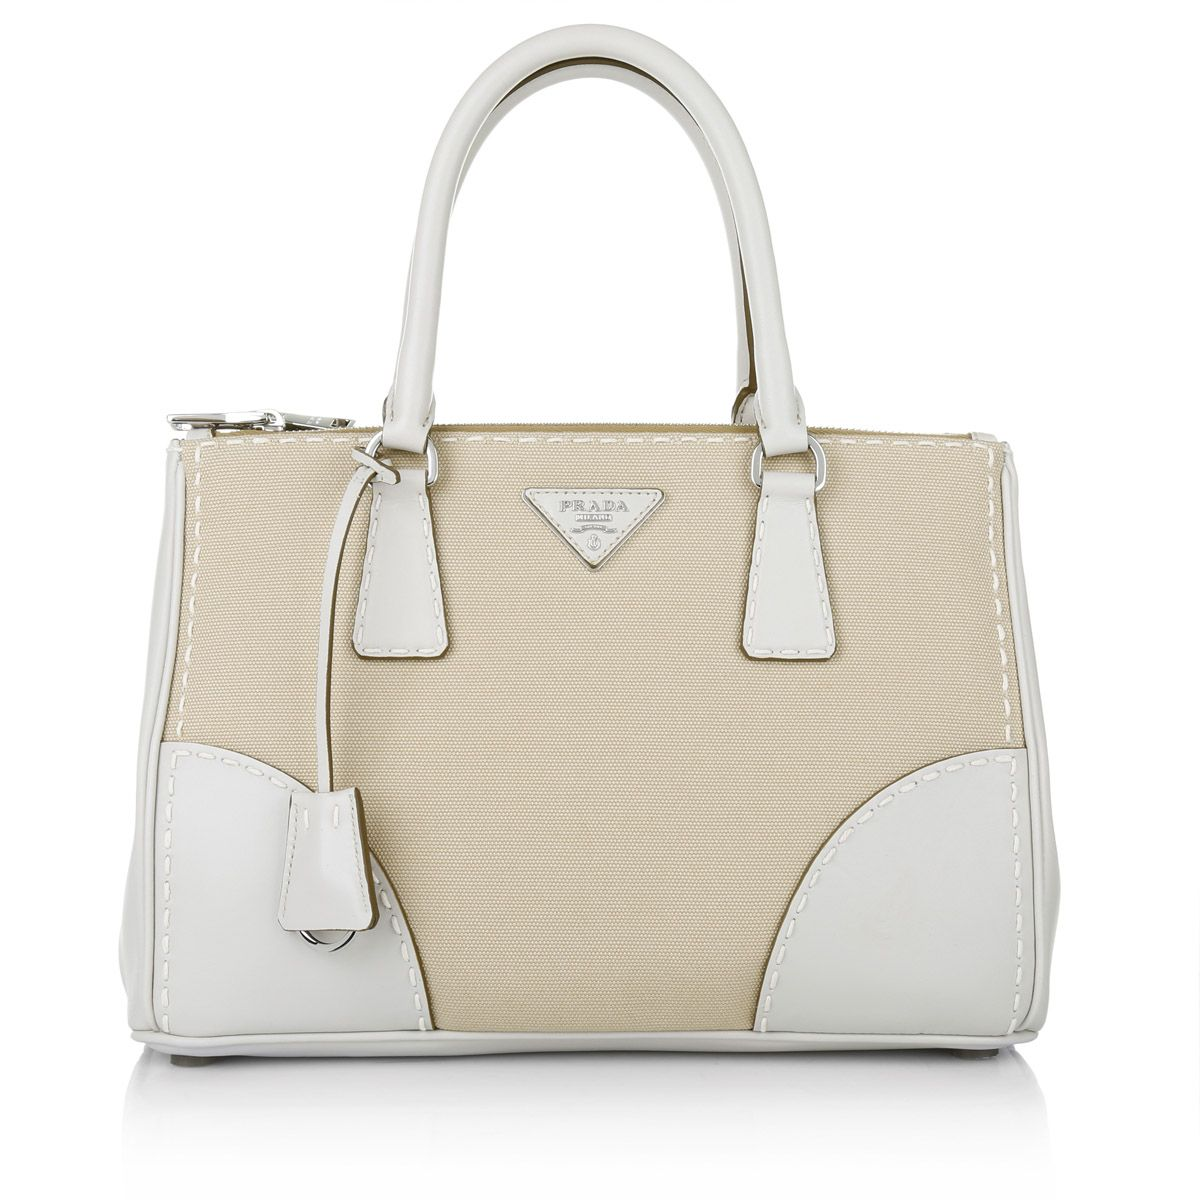 8ac7f088d94aa Perfect business bag in beige canvas and with classy white elements  Prada  Galleria Small Double Handles Rope Chalk  www.fashionette.de